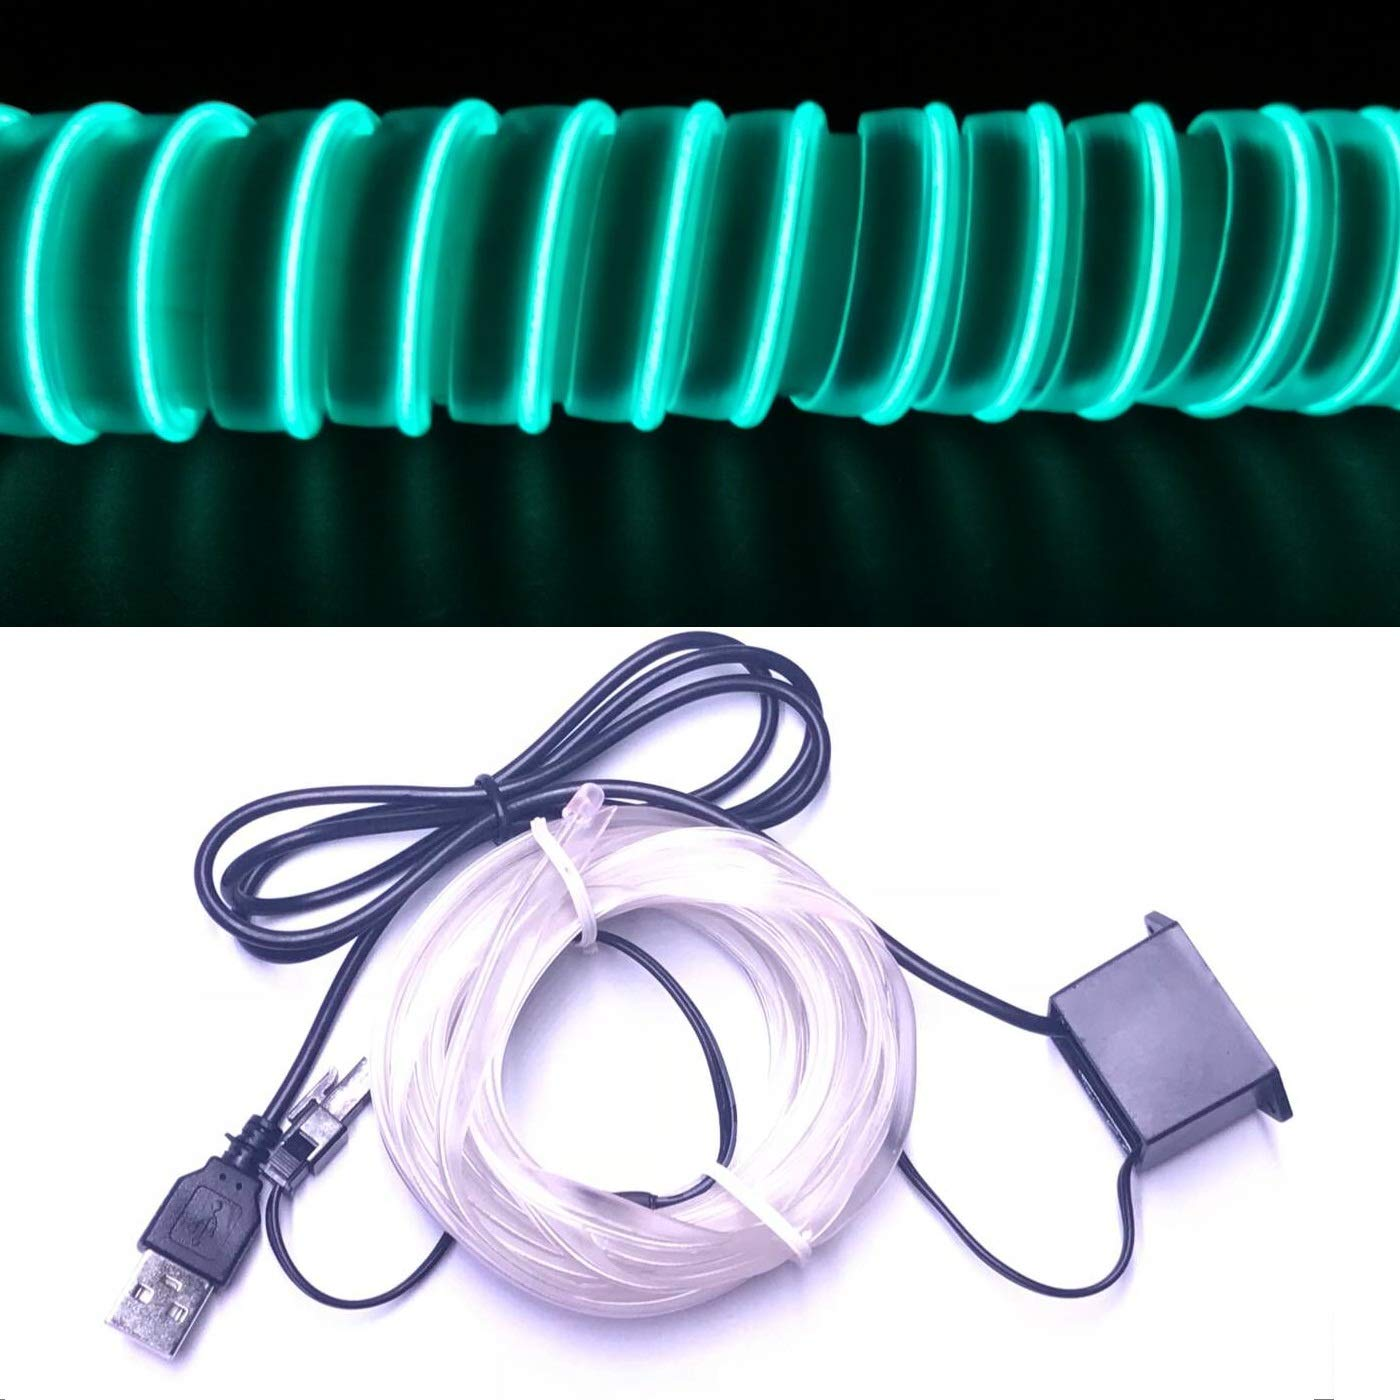 M.best USB Neon LED Light Glowing Electroluminescent Wire//El Wire for Automotive Interior Car Cosplay Decoration with 6mm Sewing Edge 5M//15FT, Blue